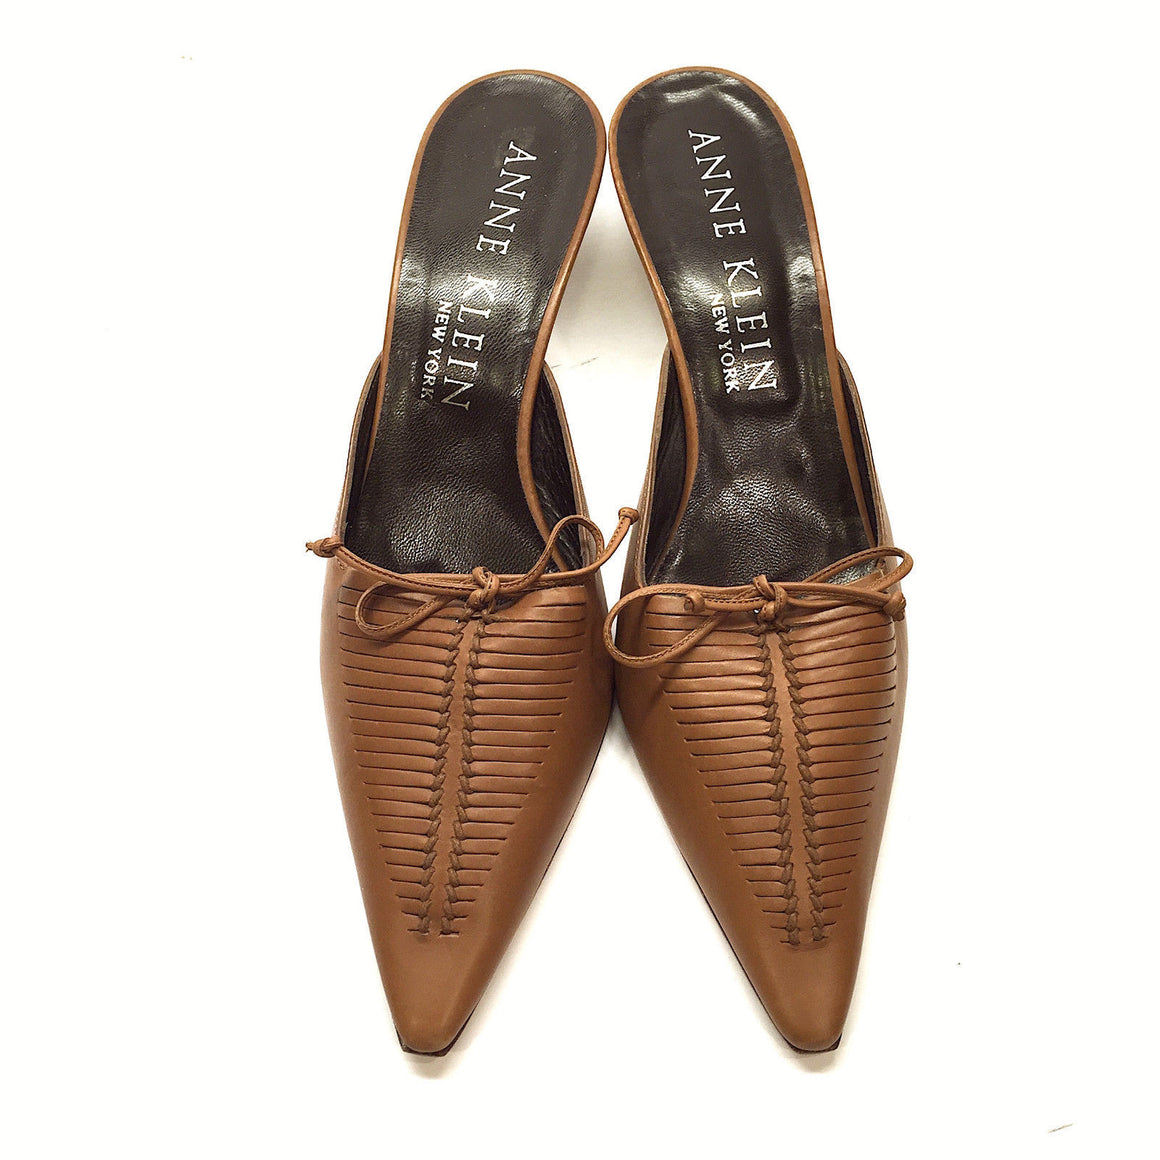 bisbiz.com ANNE KLEIN  Tan-Brown Leather Slit Uppers Slip-On  Bow Mules Pumps Shoes  Size: 8M - Bis Luxury Resale